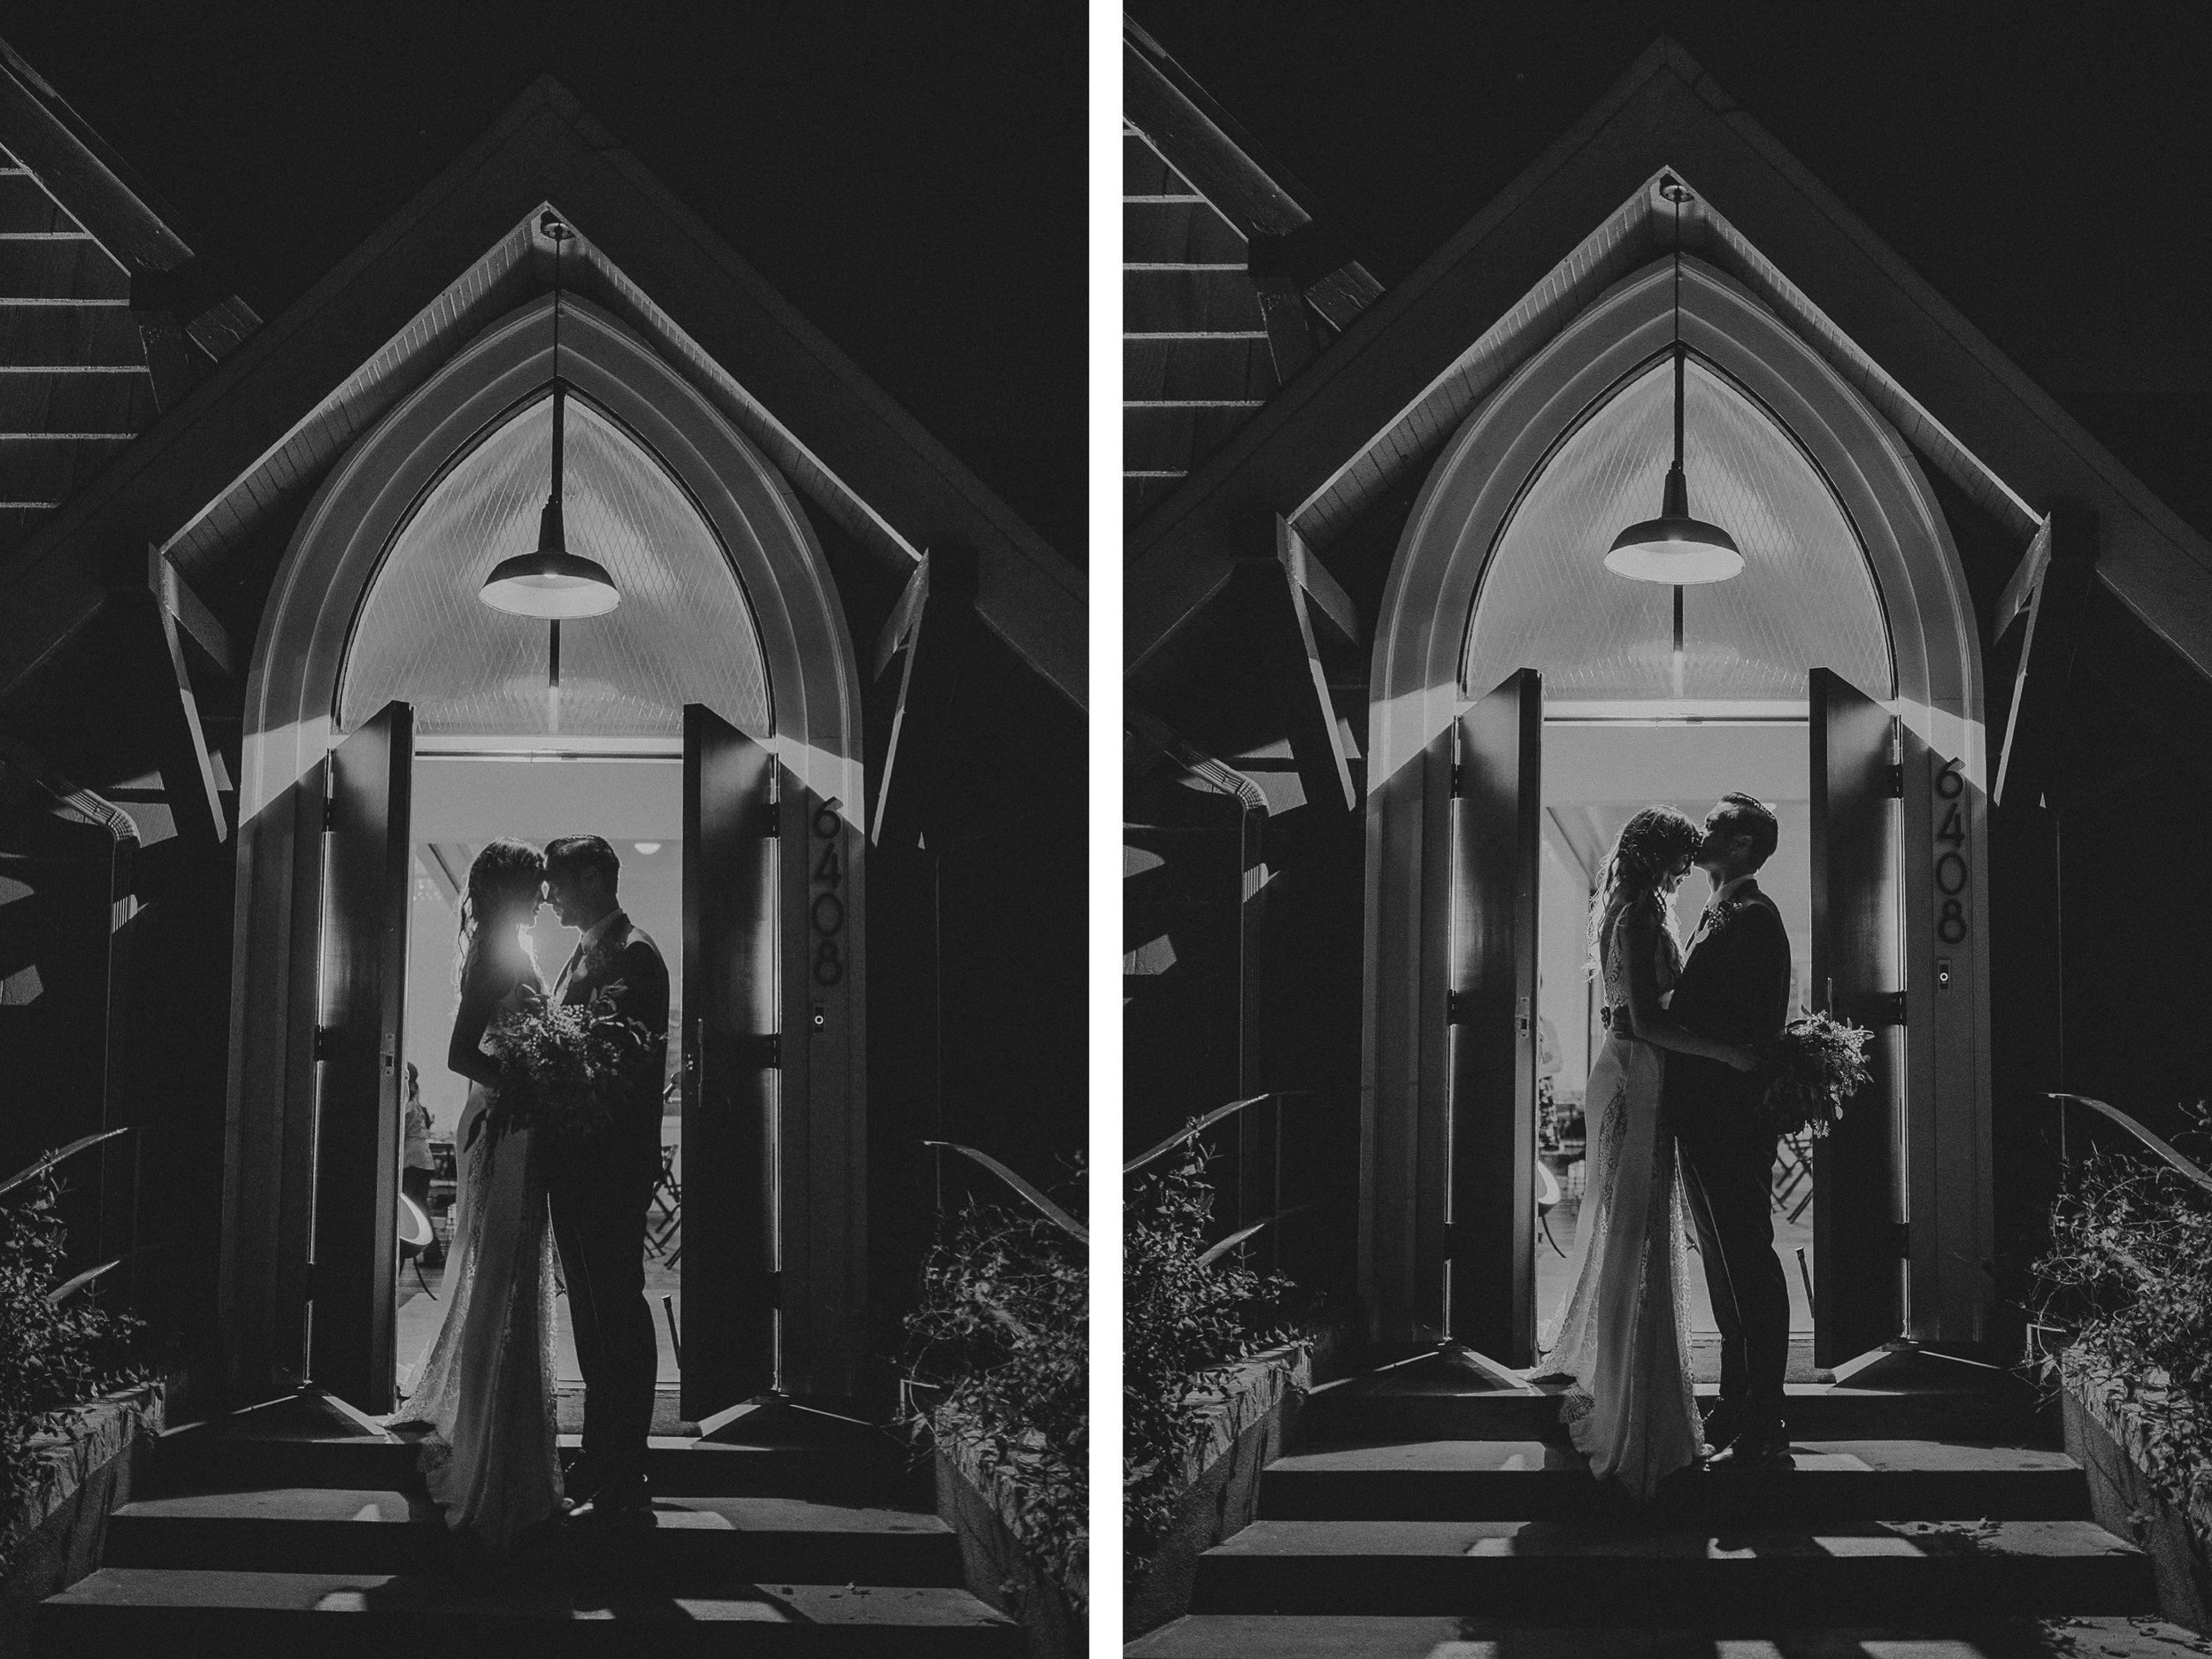 san diego wedding   photographer   monotone collage of man and woman in doorway